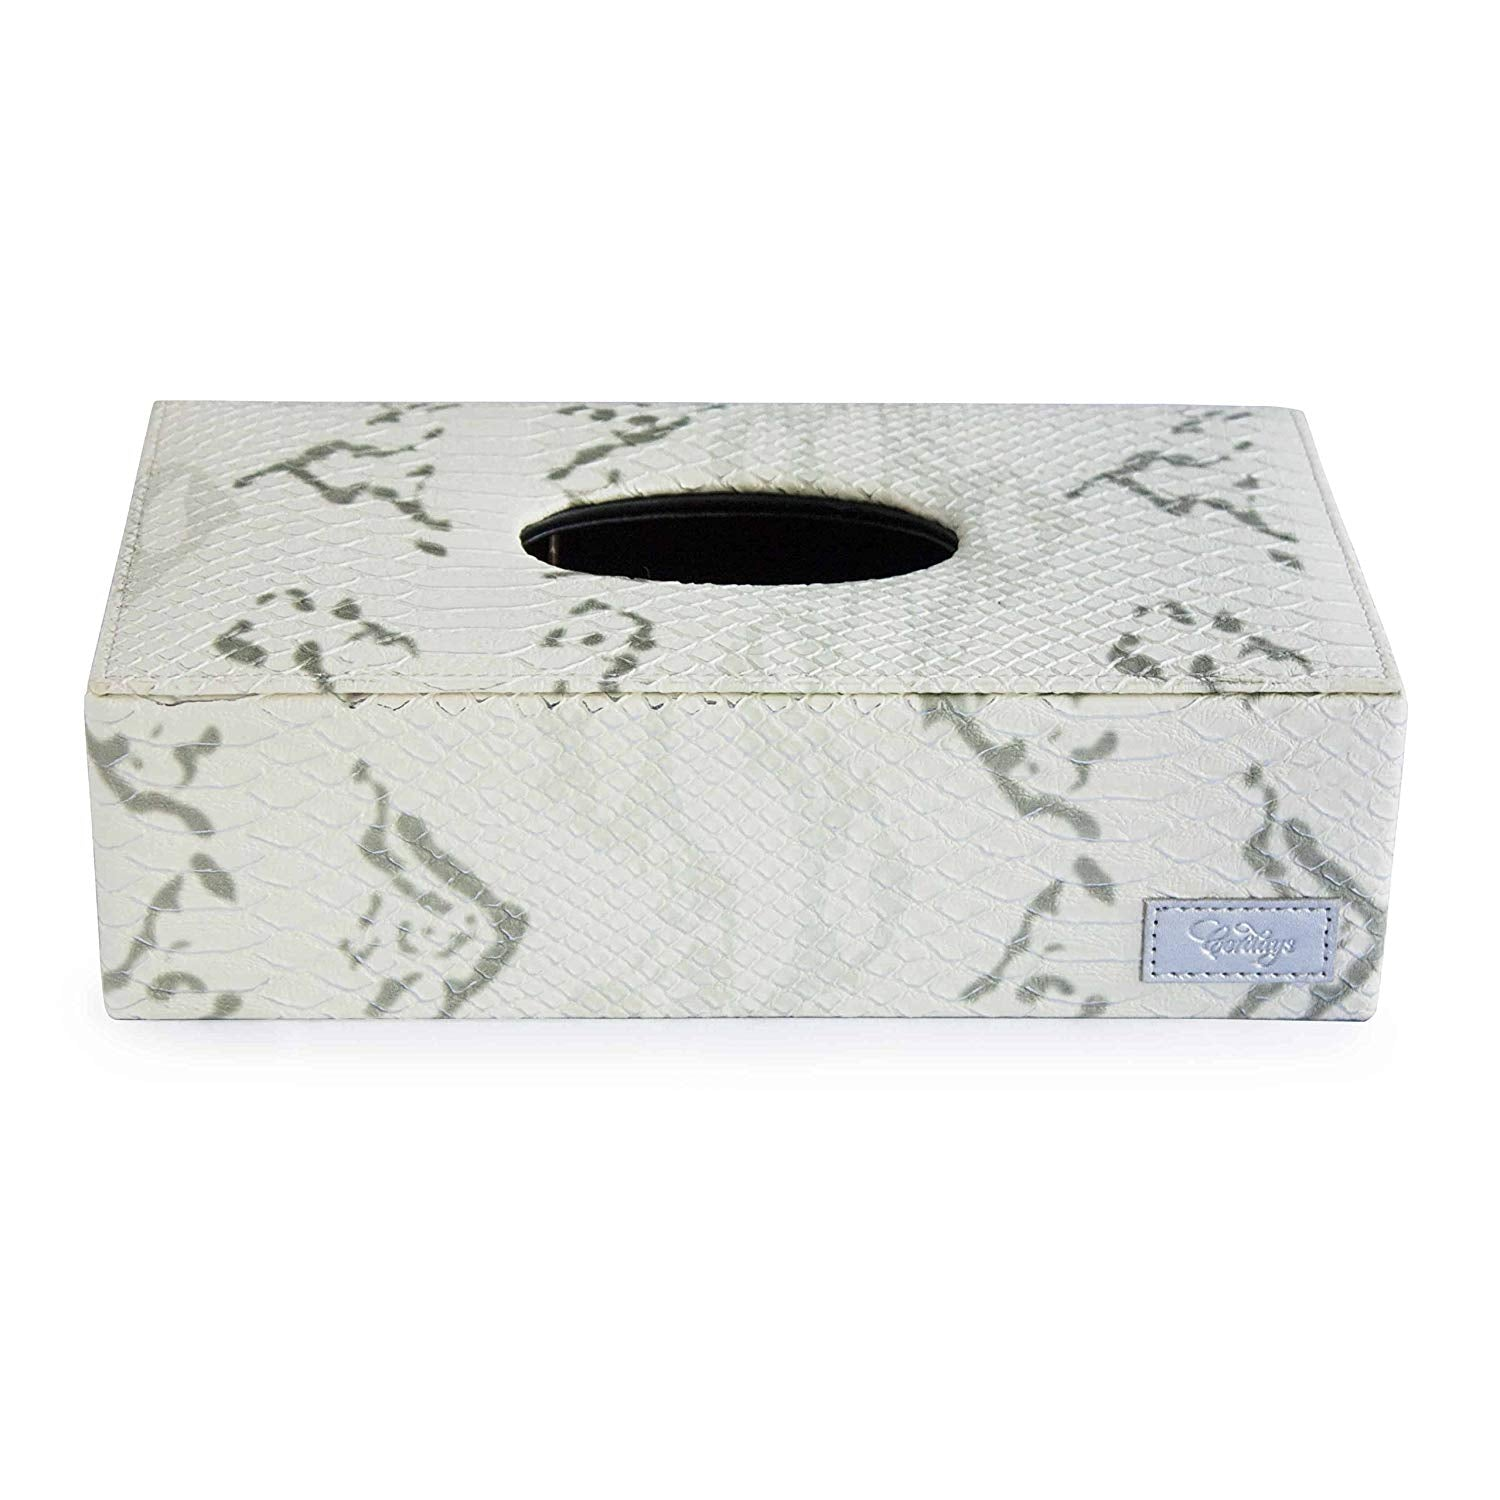 Tissue Box Cover Handcrafted in Premium Quality Textured Leatherette (Cream)